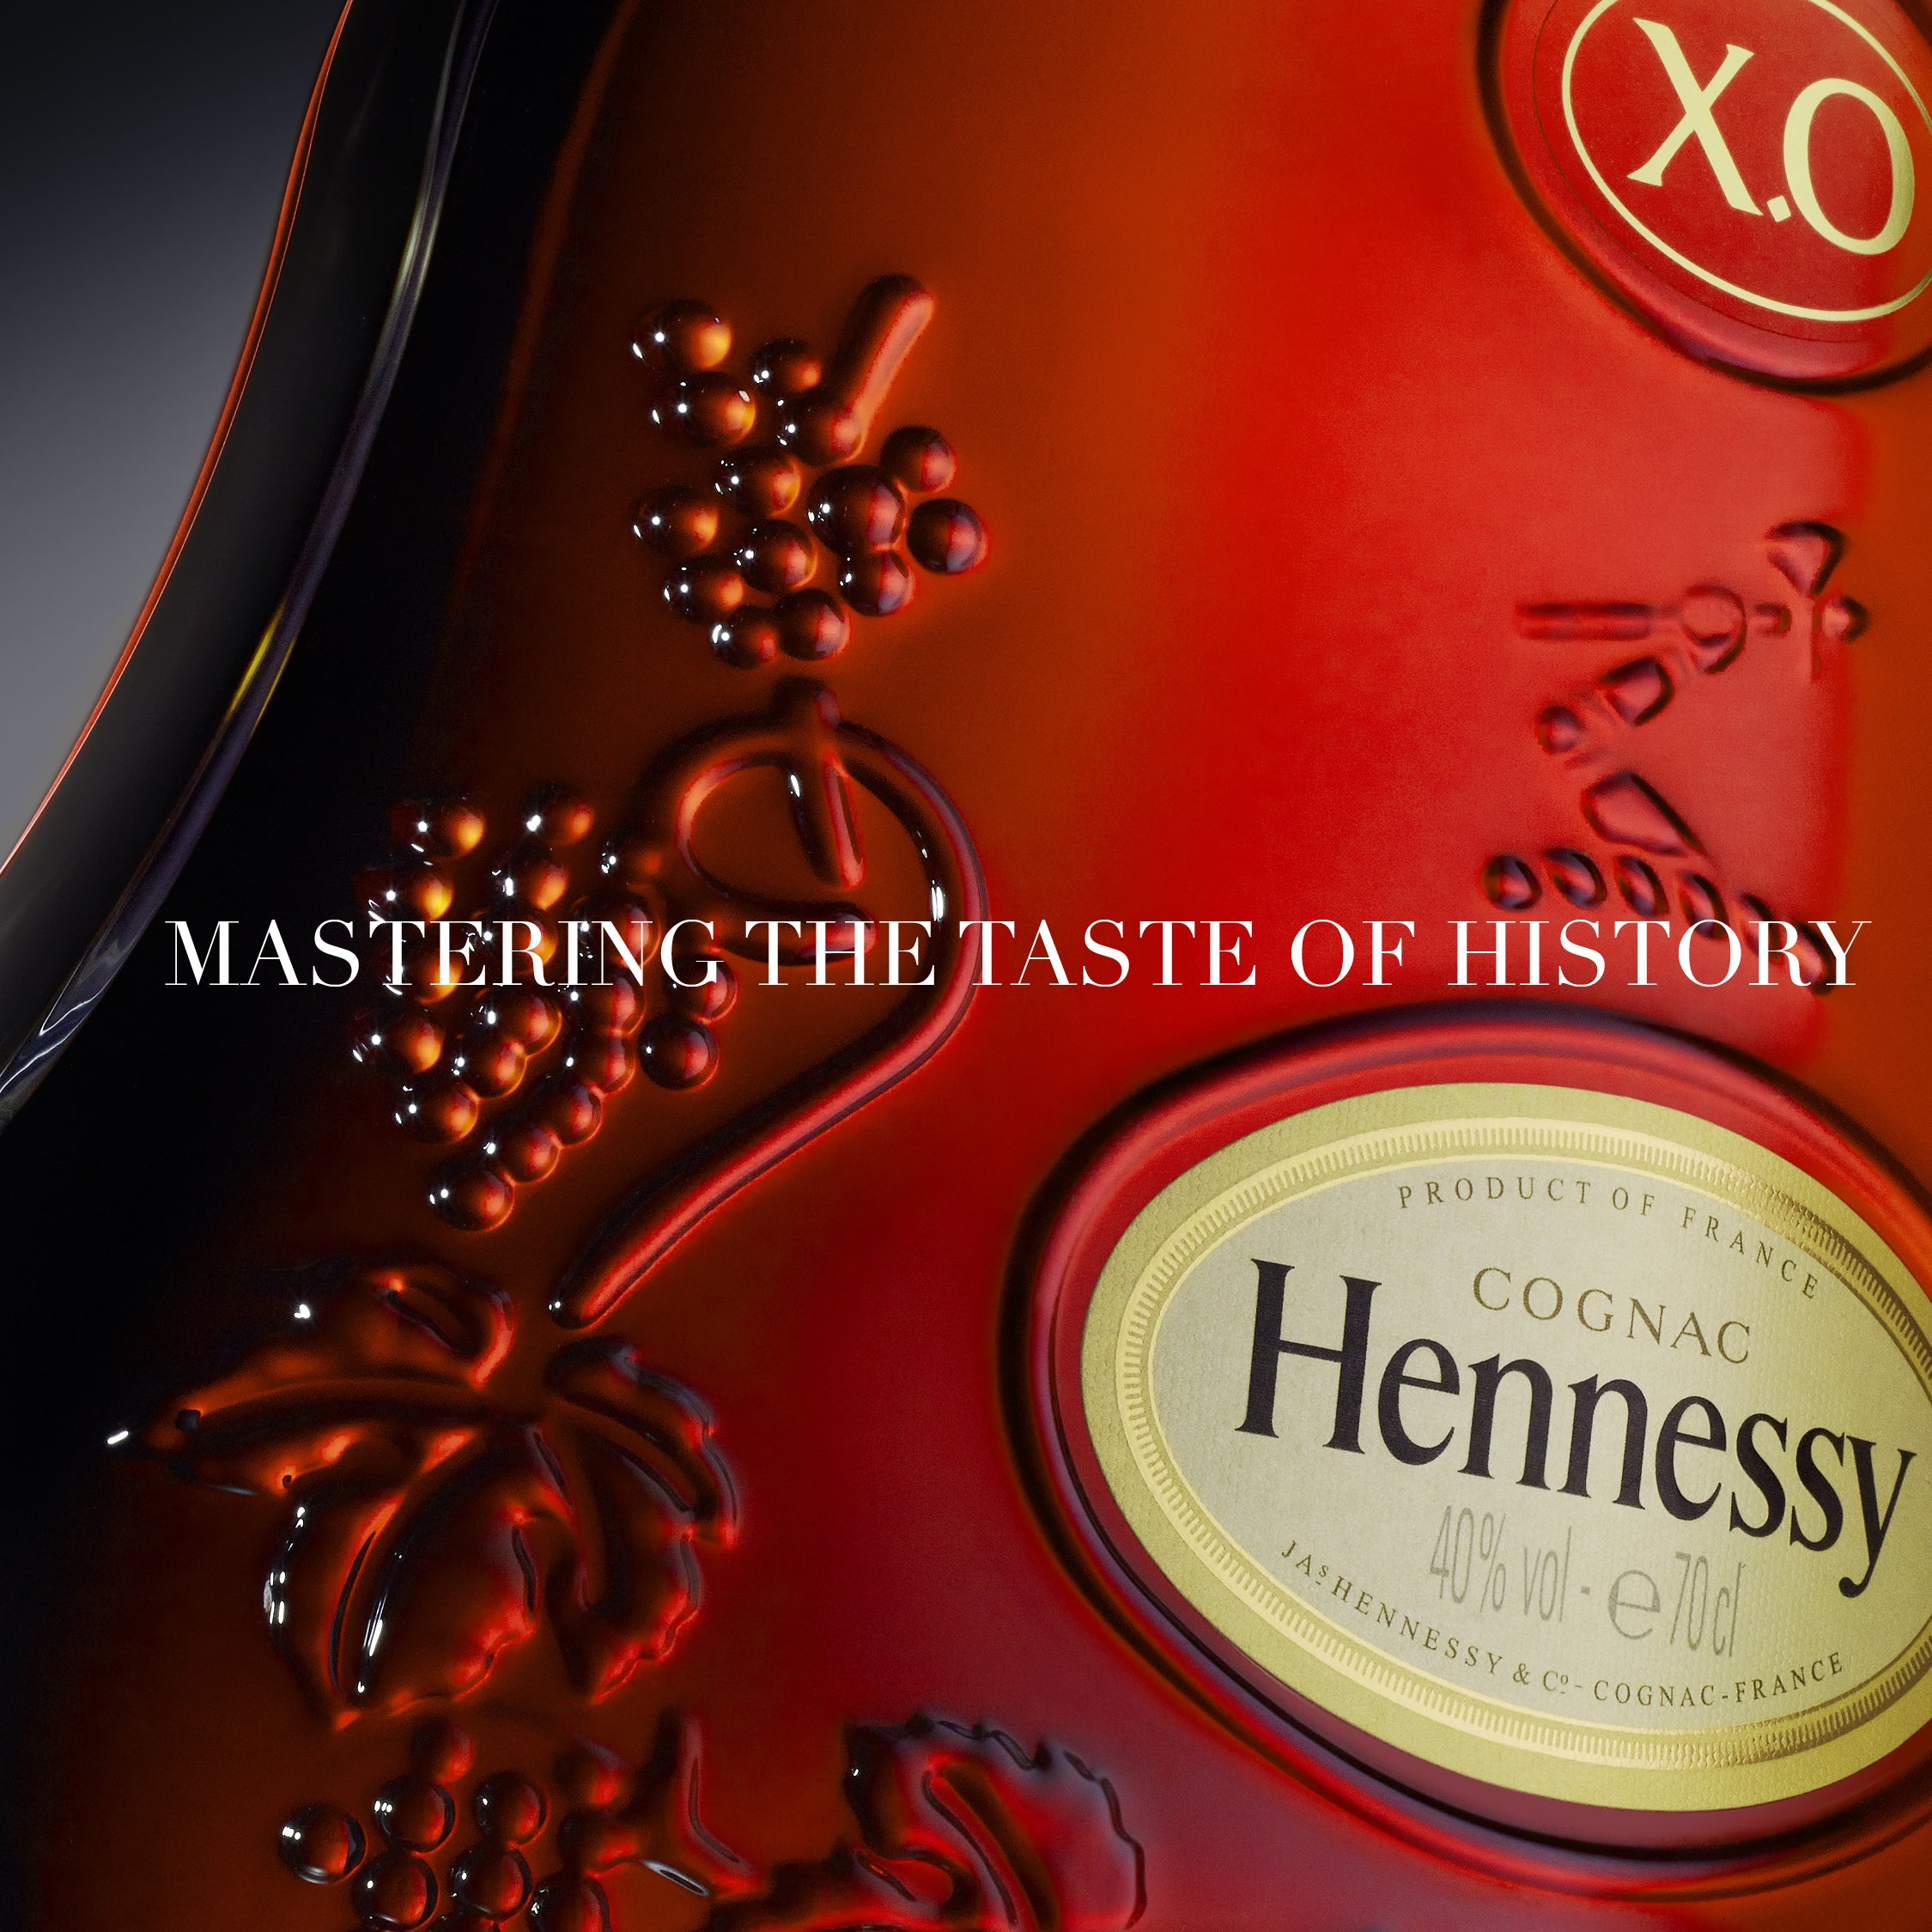 Mastering the taste of history